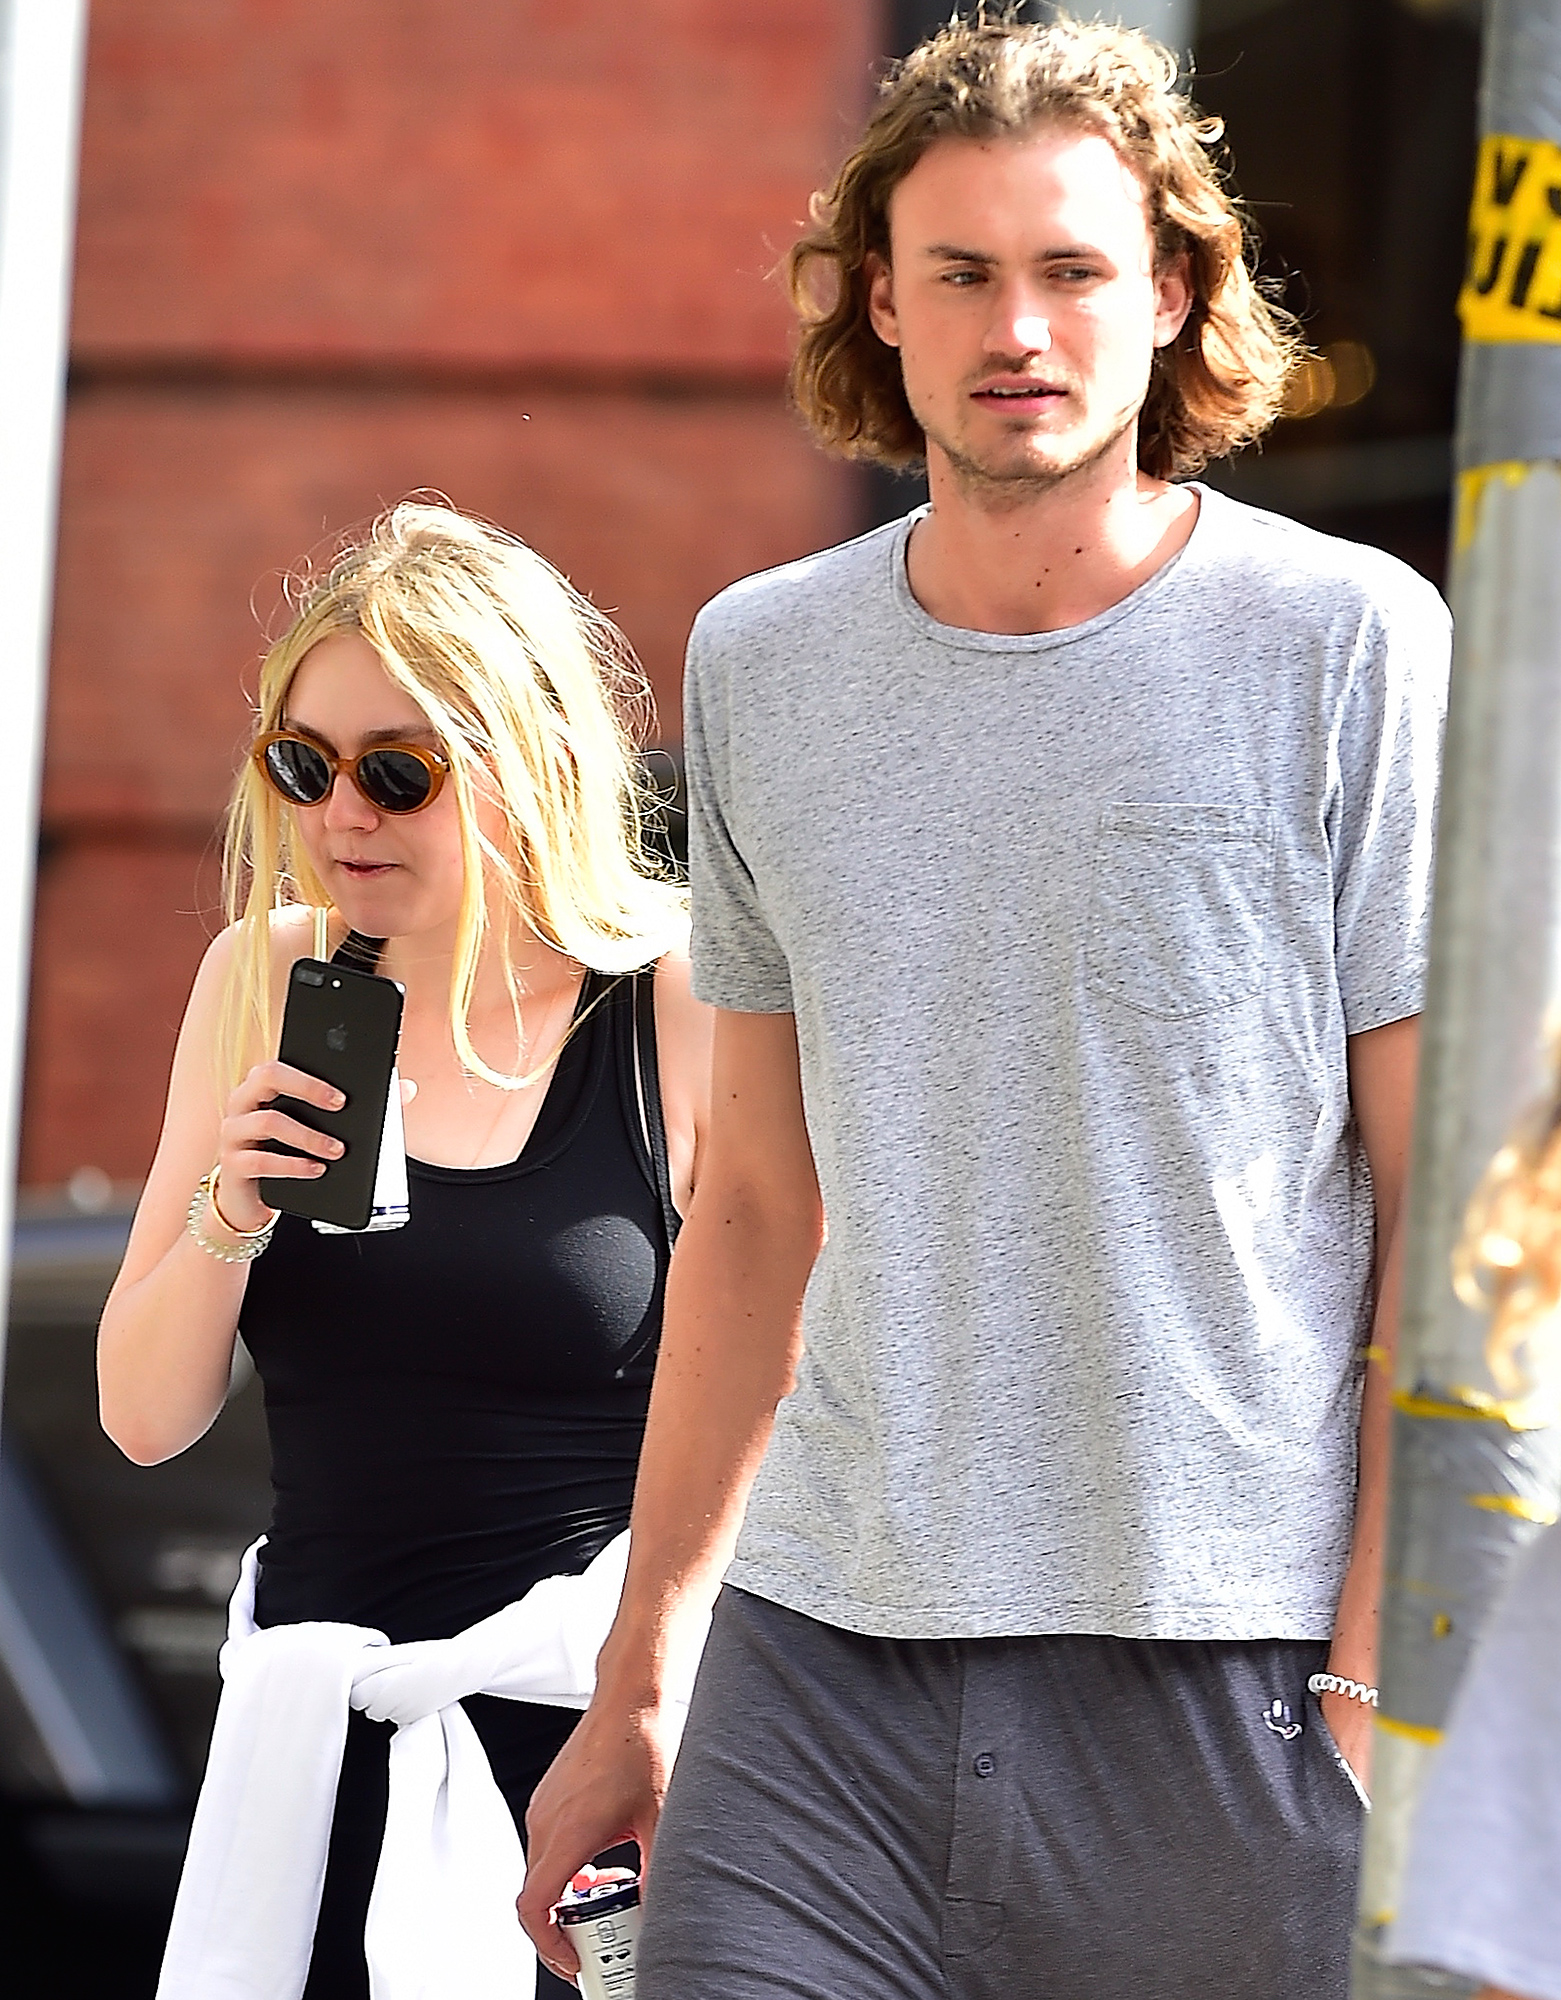 EXCLUSIVE: Dakota Fanning and Her Rumored Boyfriend are Spotted Heading to the Gym in New York City